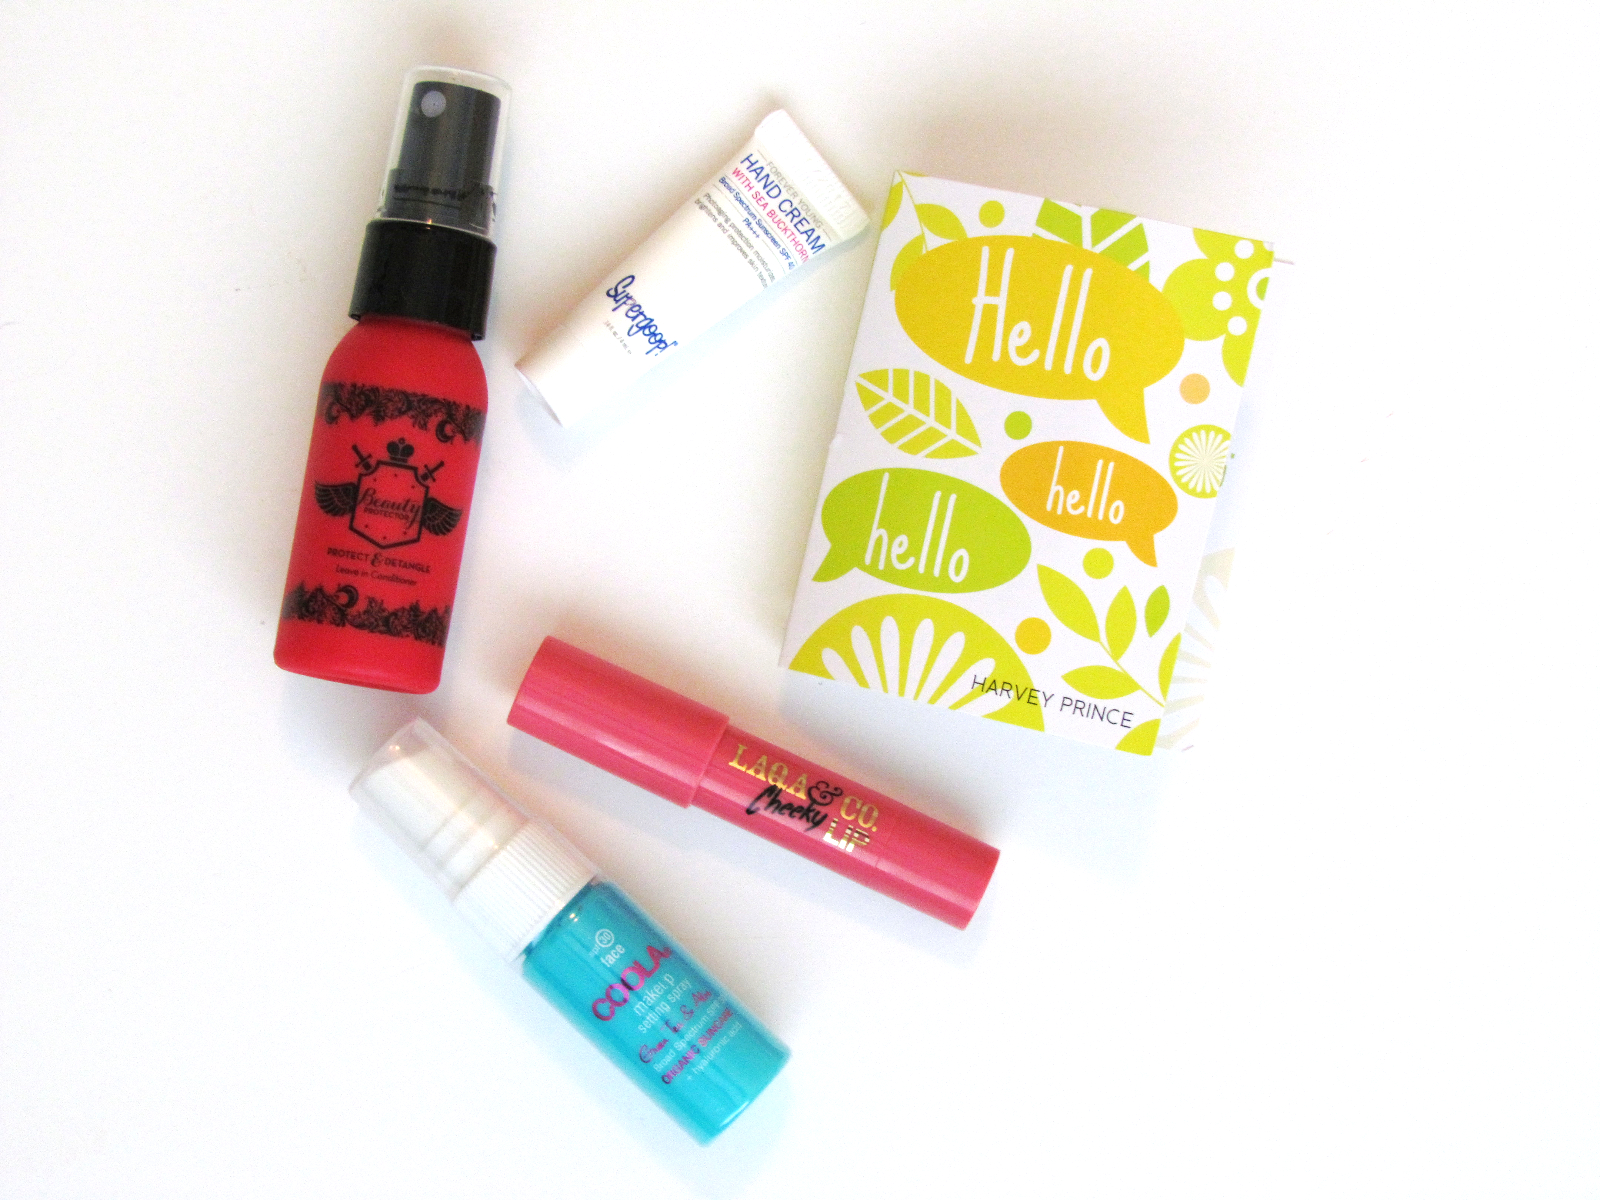 August Birchbox, Beauty Protector Protect and Detangle leave-in conditioner, heat protectant, and shine finishing spray, COOLA organic makeup setting spray, Harvey Prince Hello perfume, LAQA & Co. Charm school kit cheek and lip balm, Supergoop! Forever young hand cream - Southern New Yorker